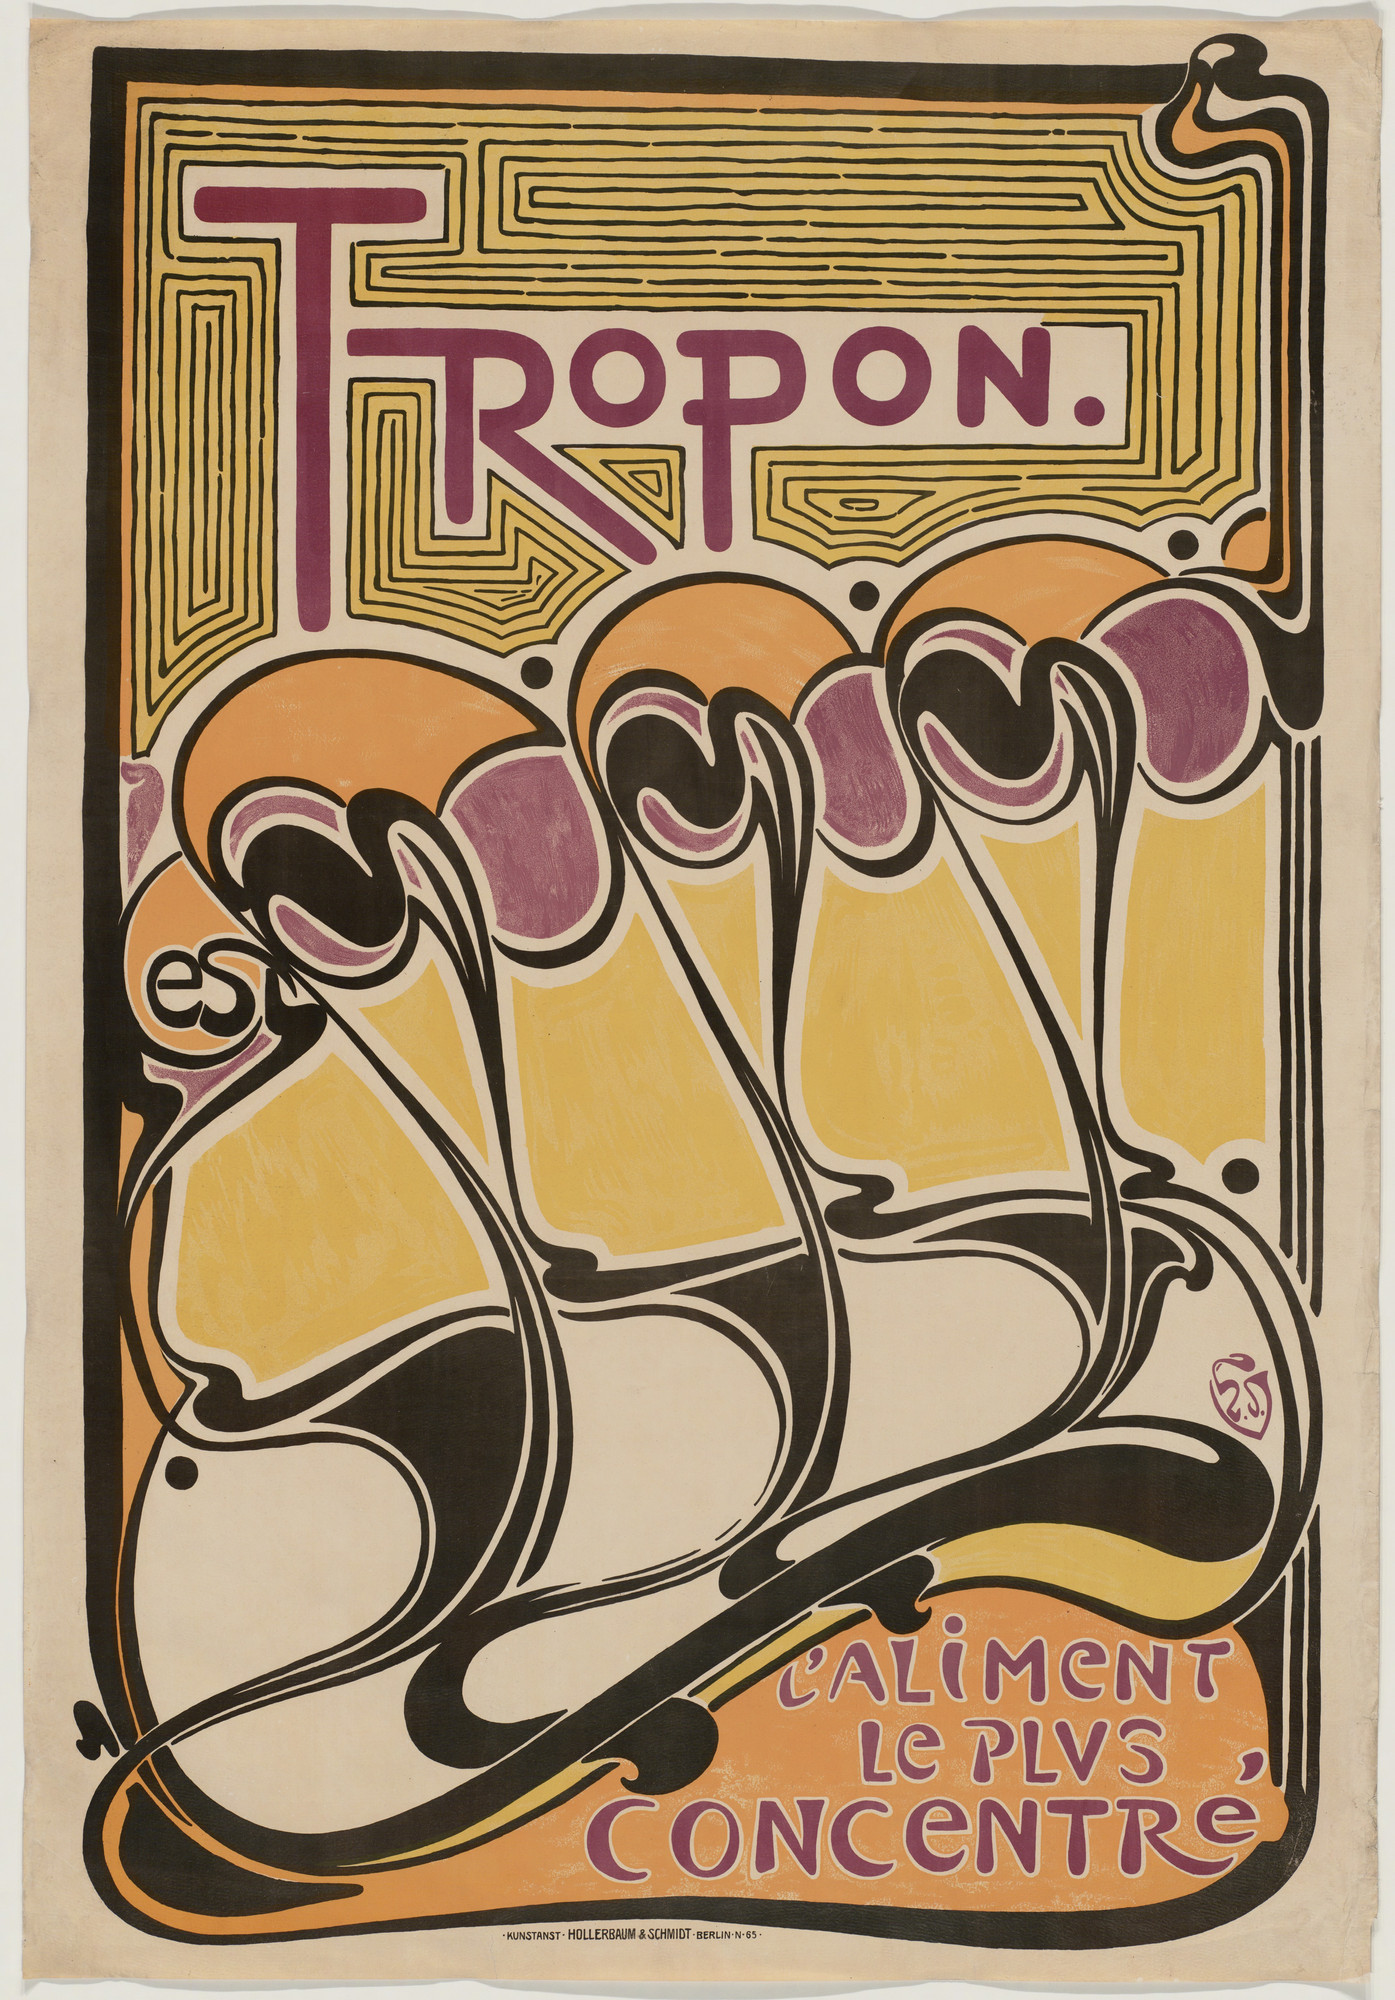 Henry Clemens van de Velde. Tropon, l'Aliment Le Plus Concentré (Tropon, the most concentrated nourishment) (Poster advertising protein extract). 1899